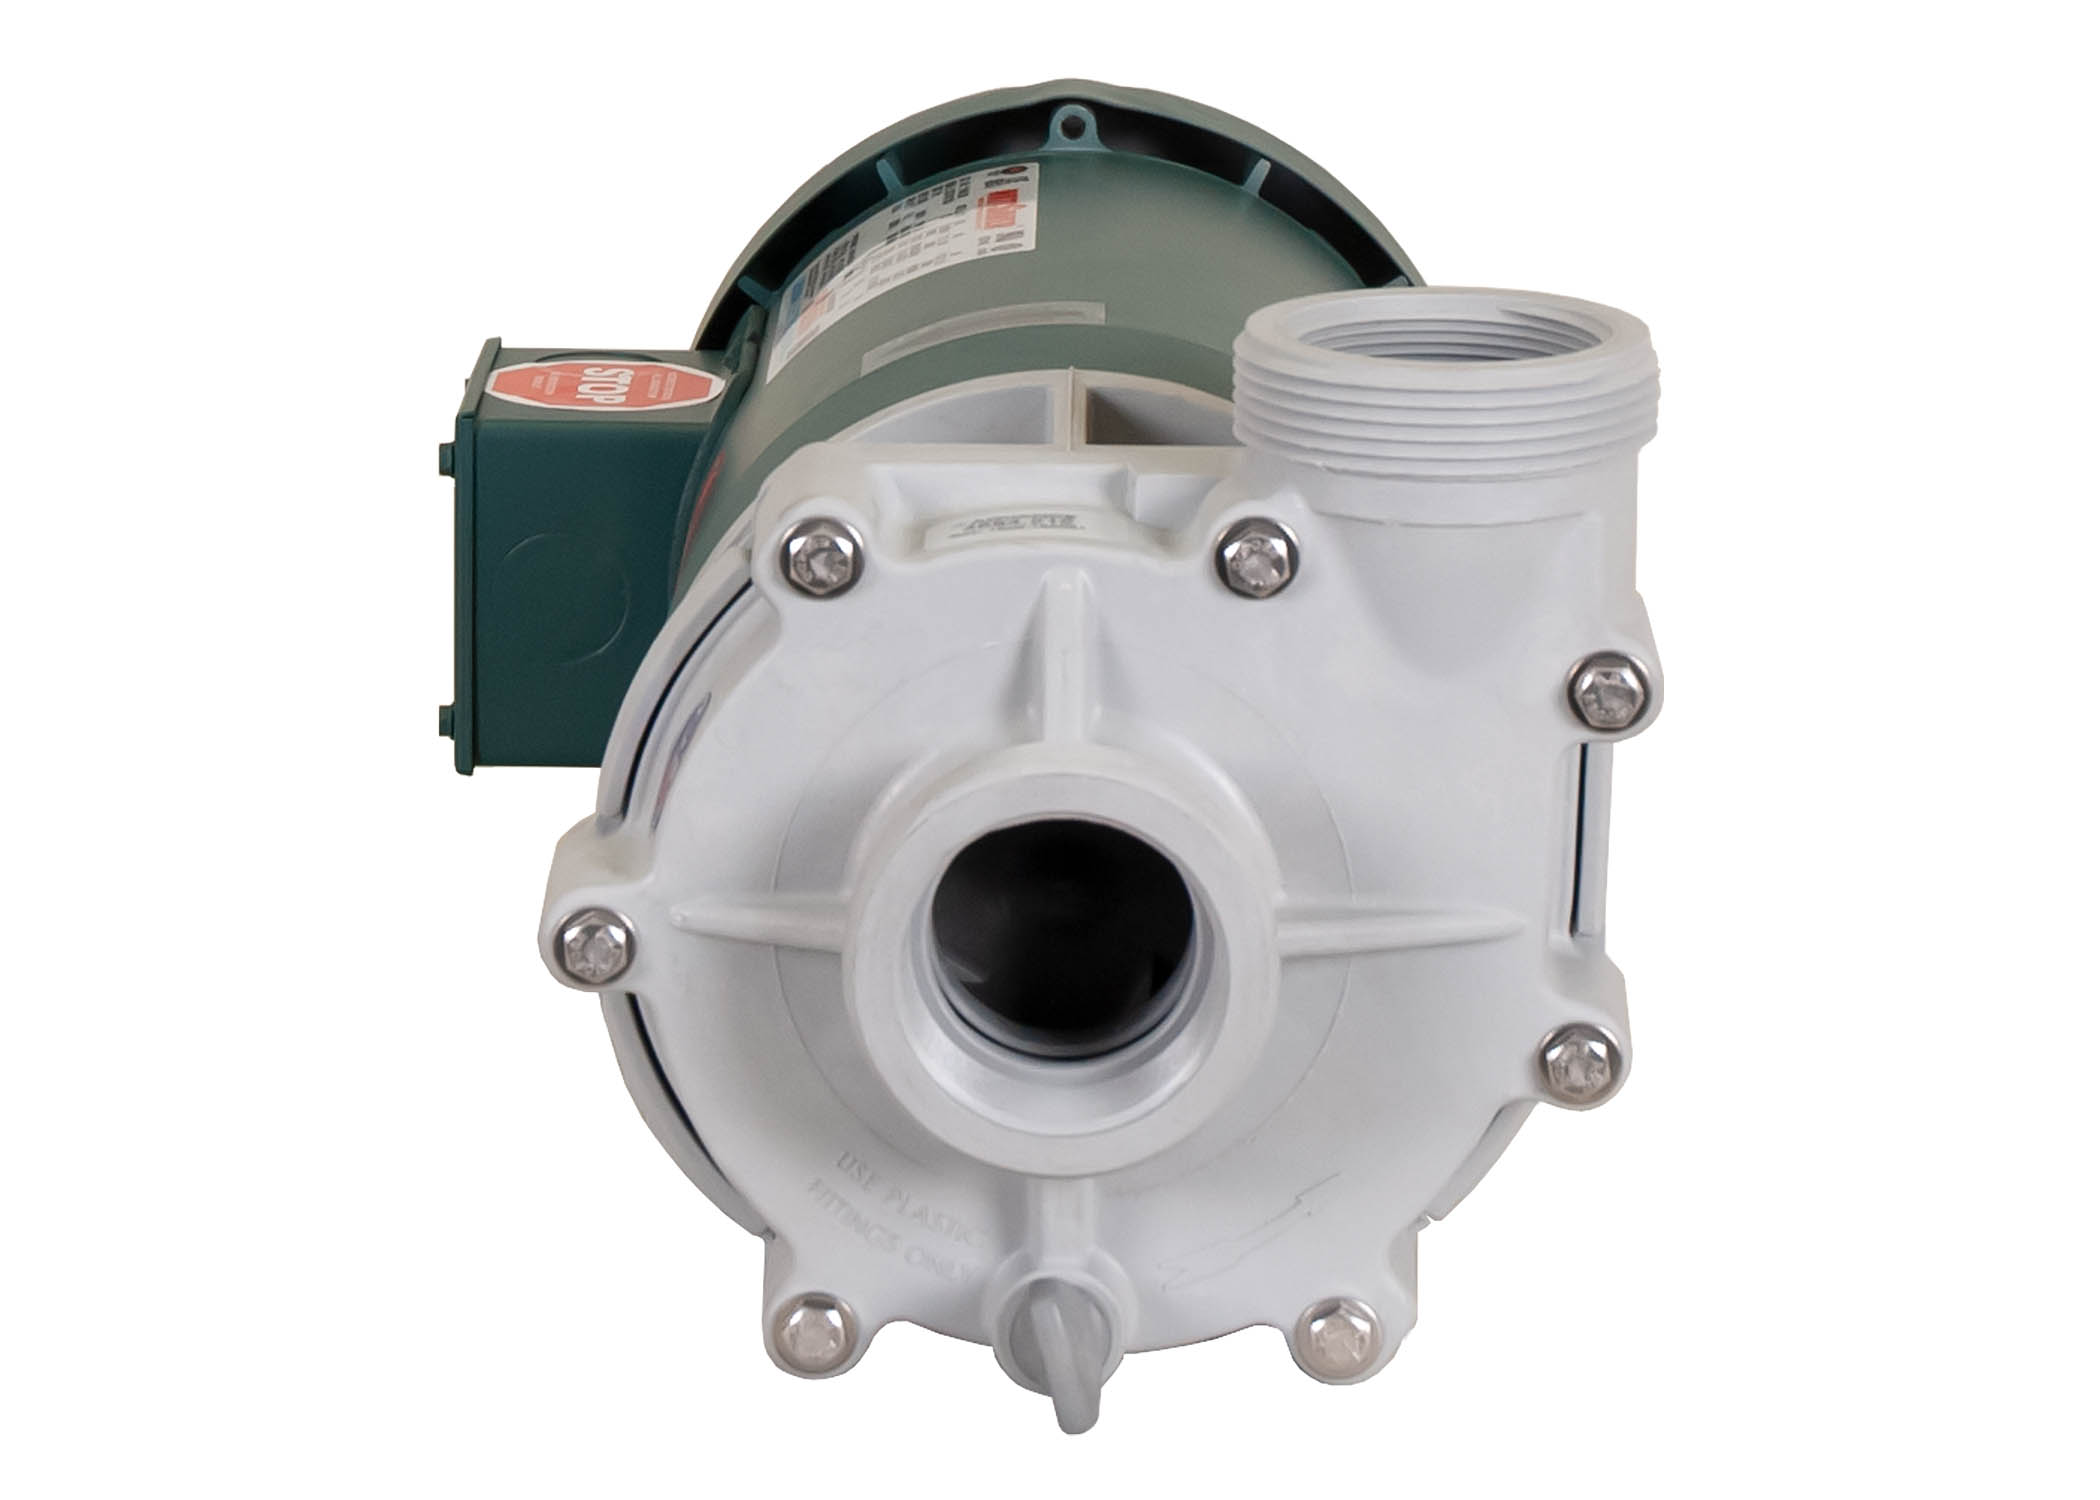 Advance 4000 Pump with green Leeson Motor front view